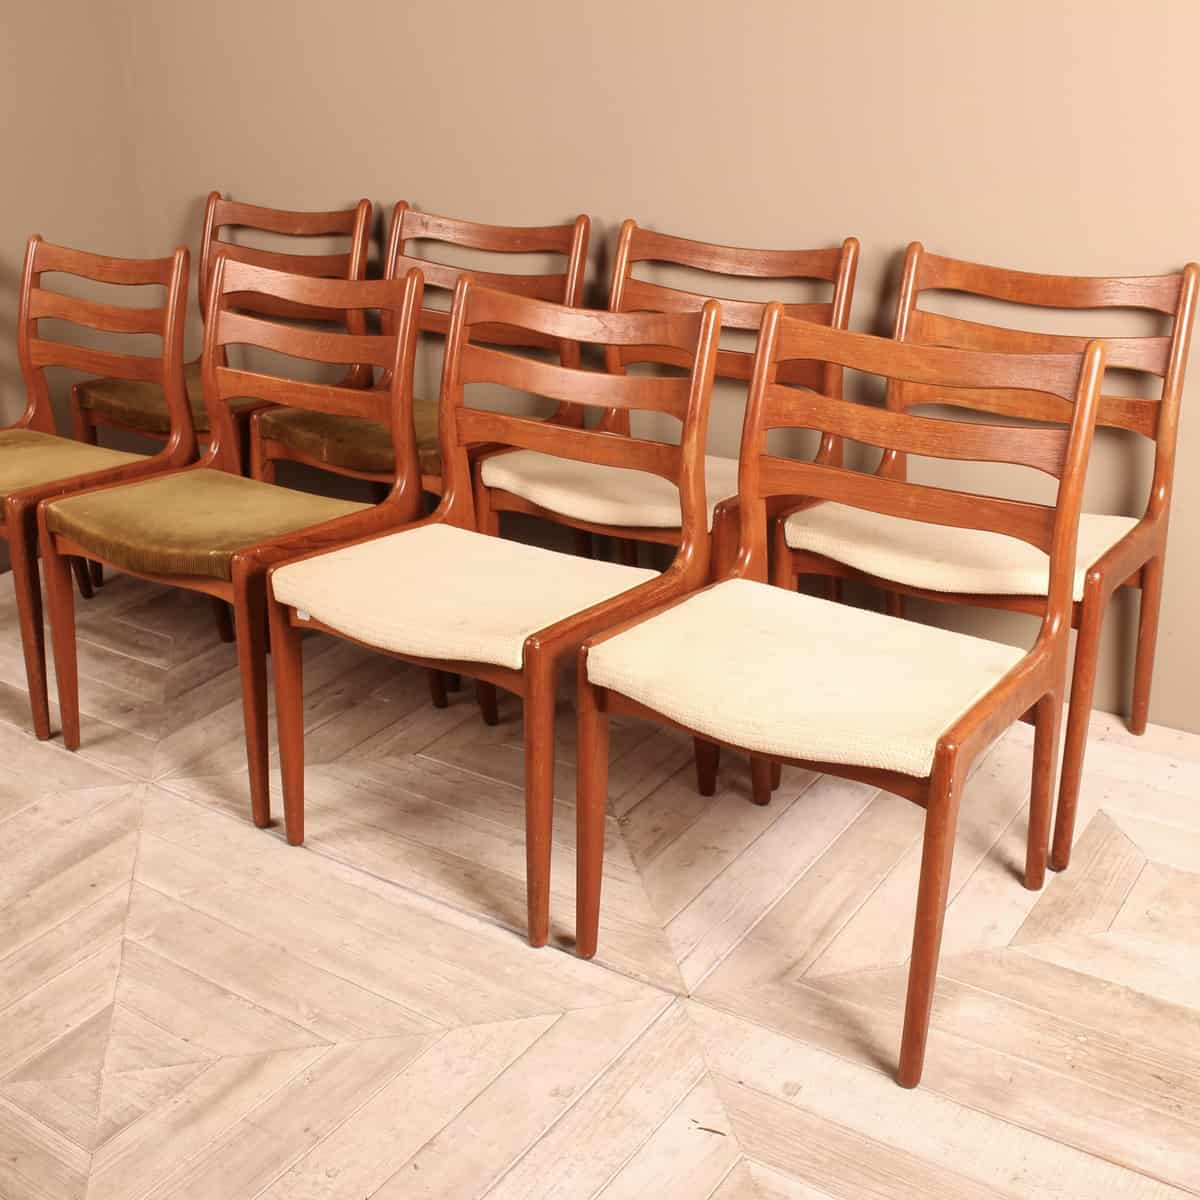 A Set Of Eight Midcentury Danish Teak Dining Chairs By Dyrlund Tinker And Toad